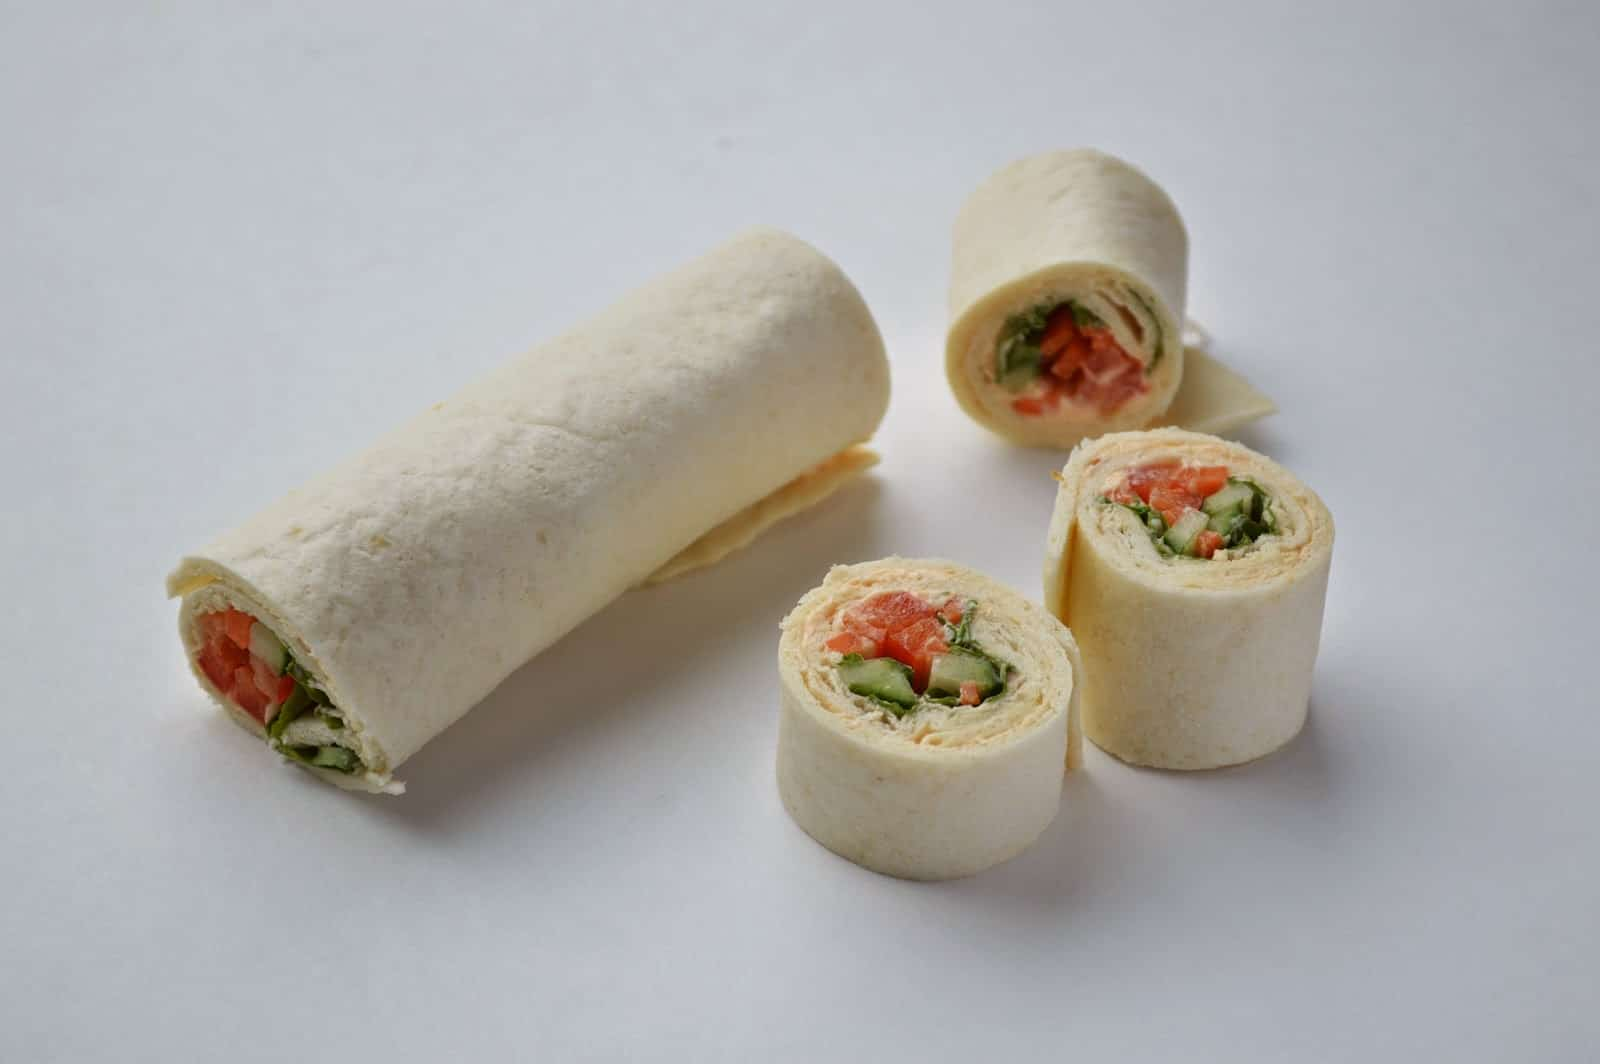 Veggie and hummus wraps